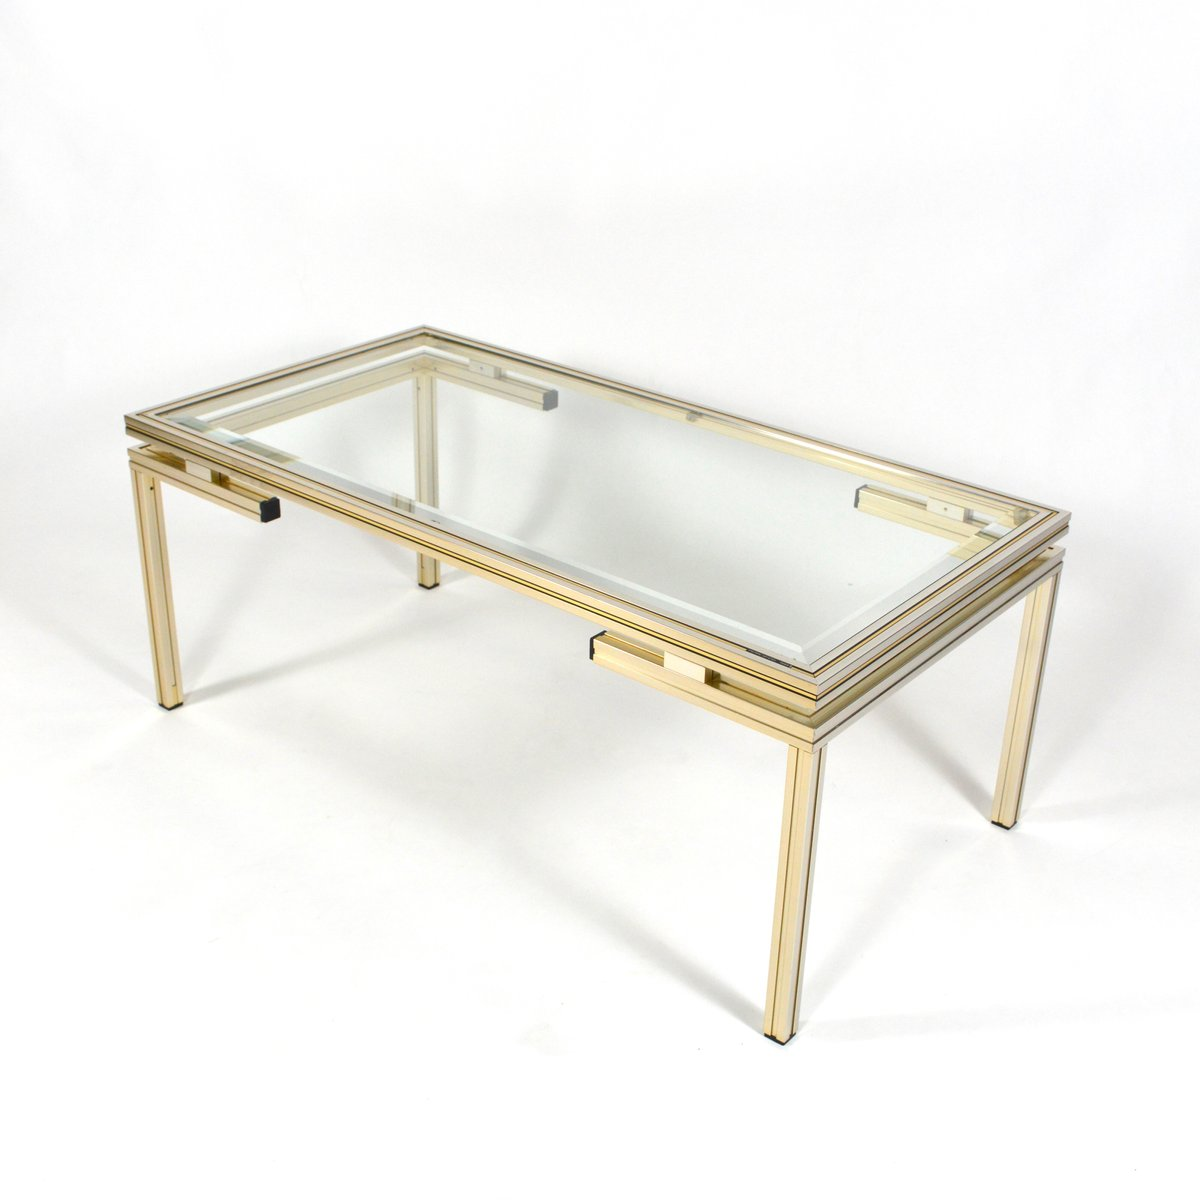 French Silver And Gold Coffee Table By Pierre Vandel